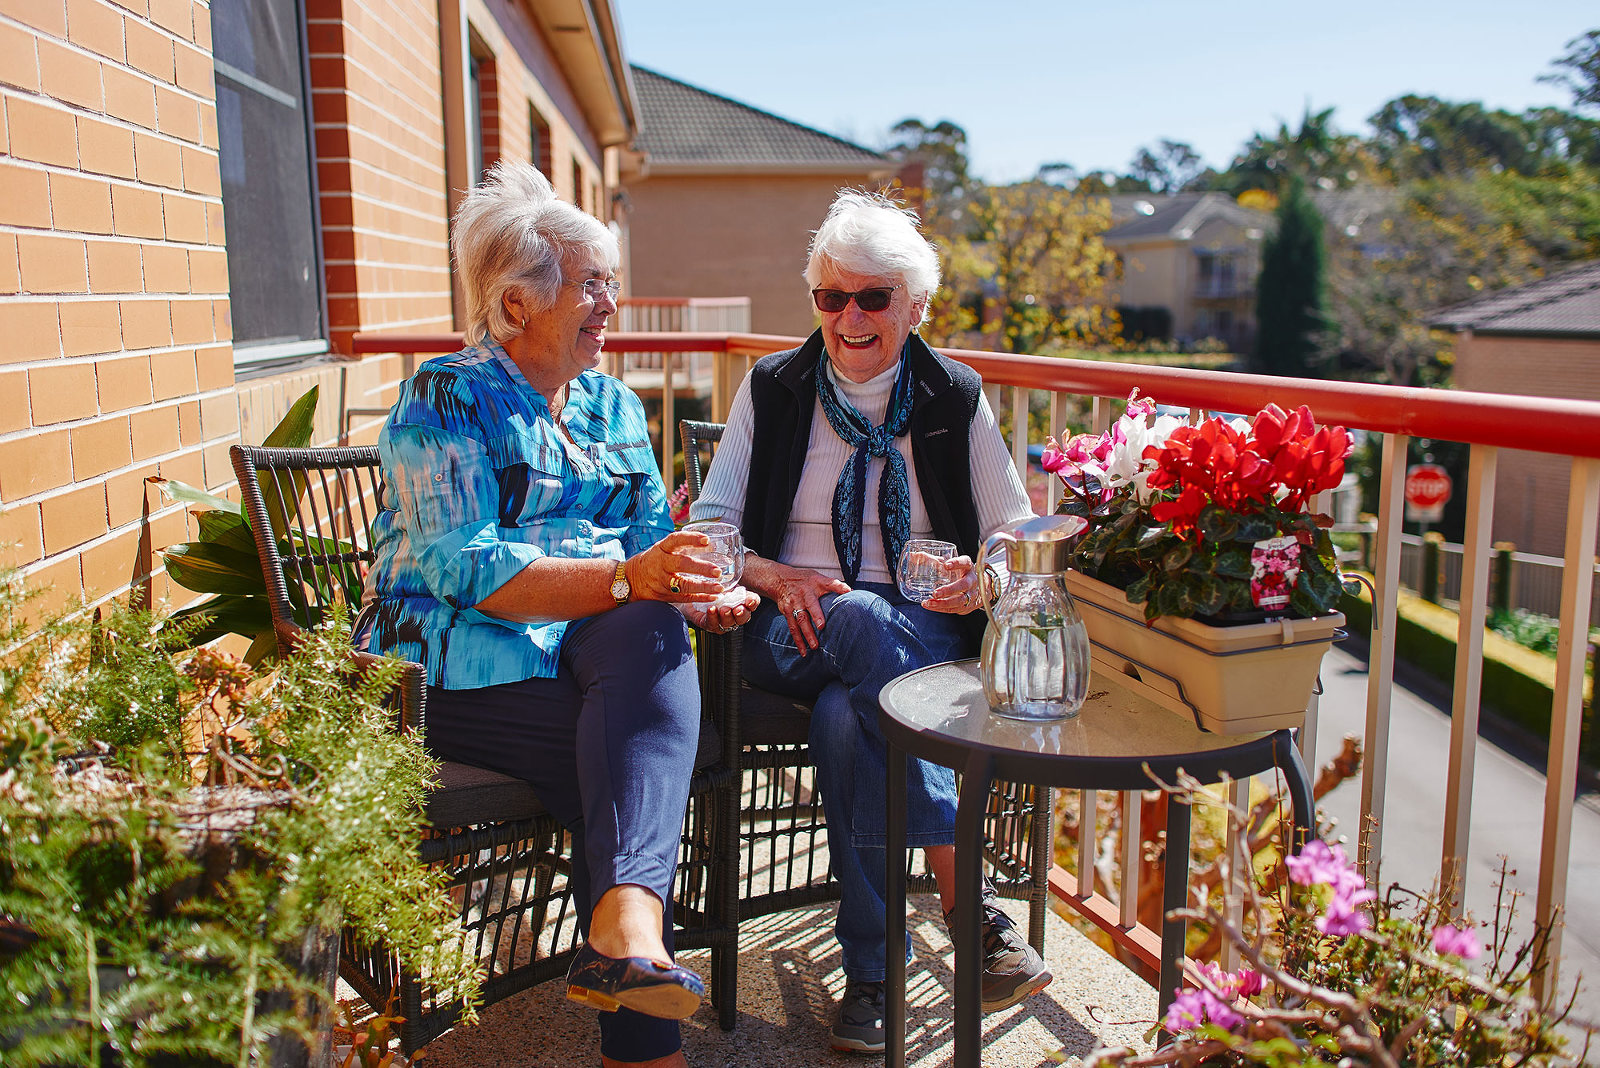 Aged care residents at home